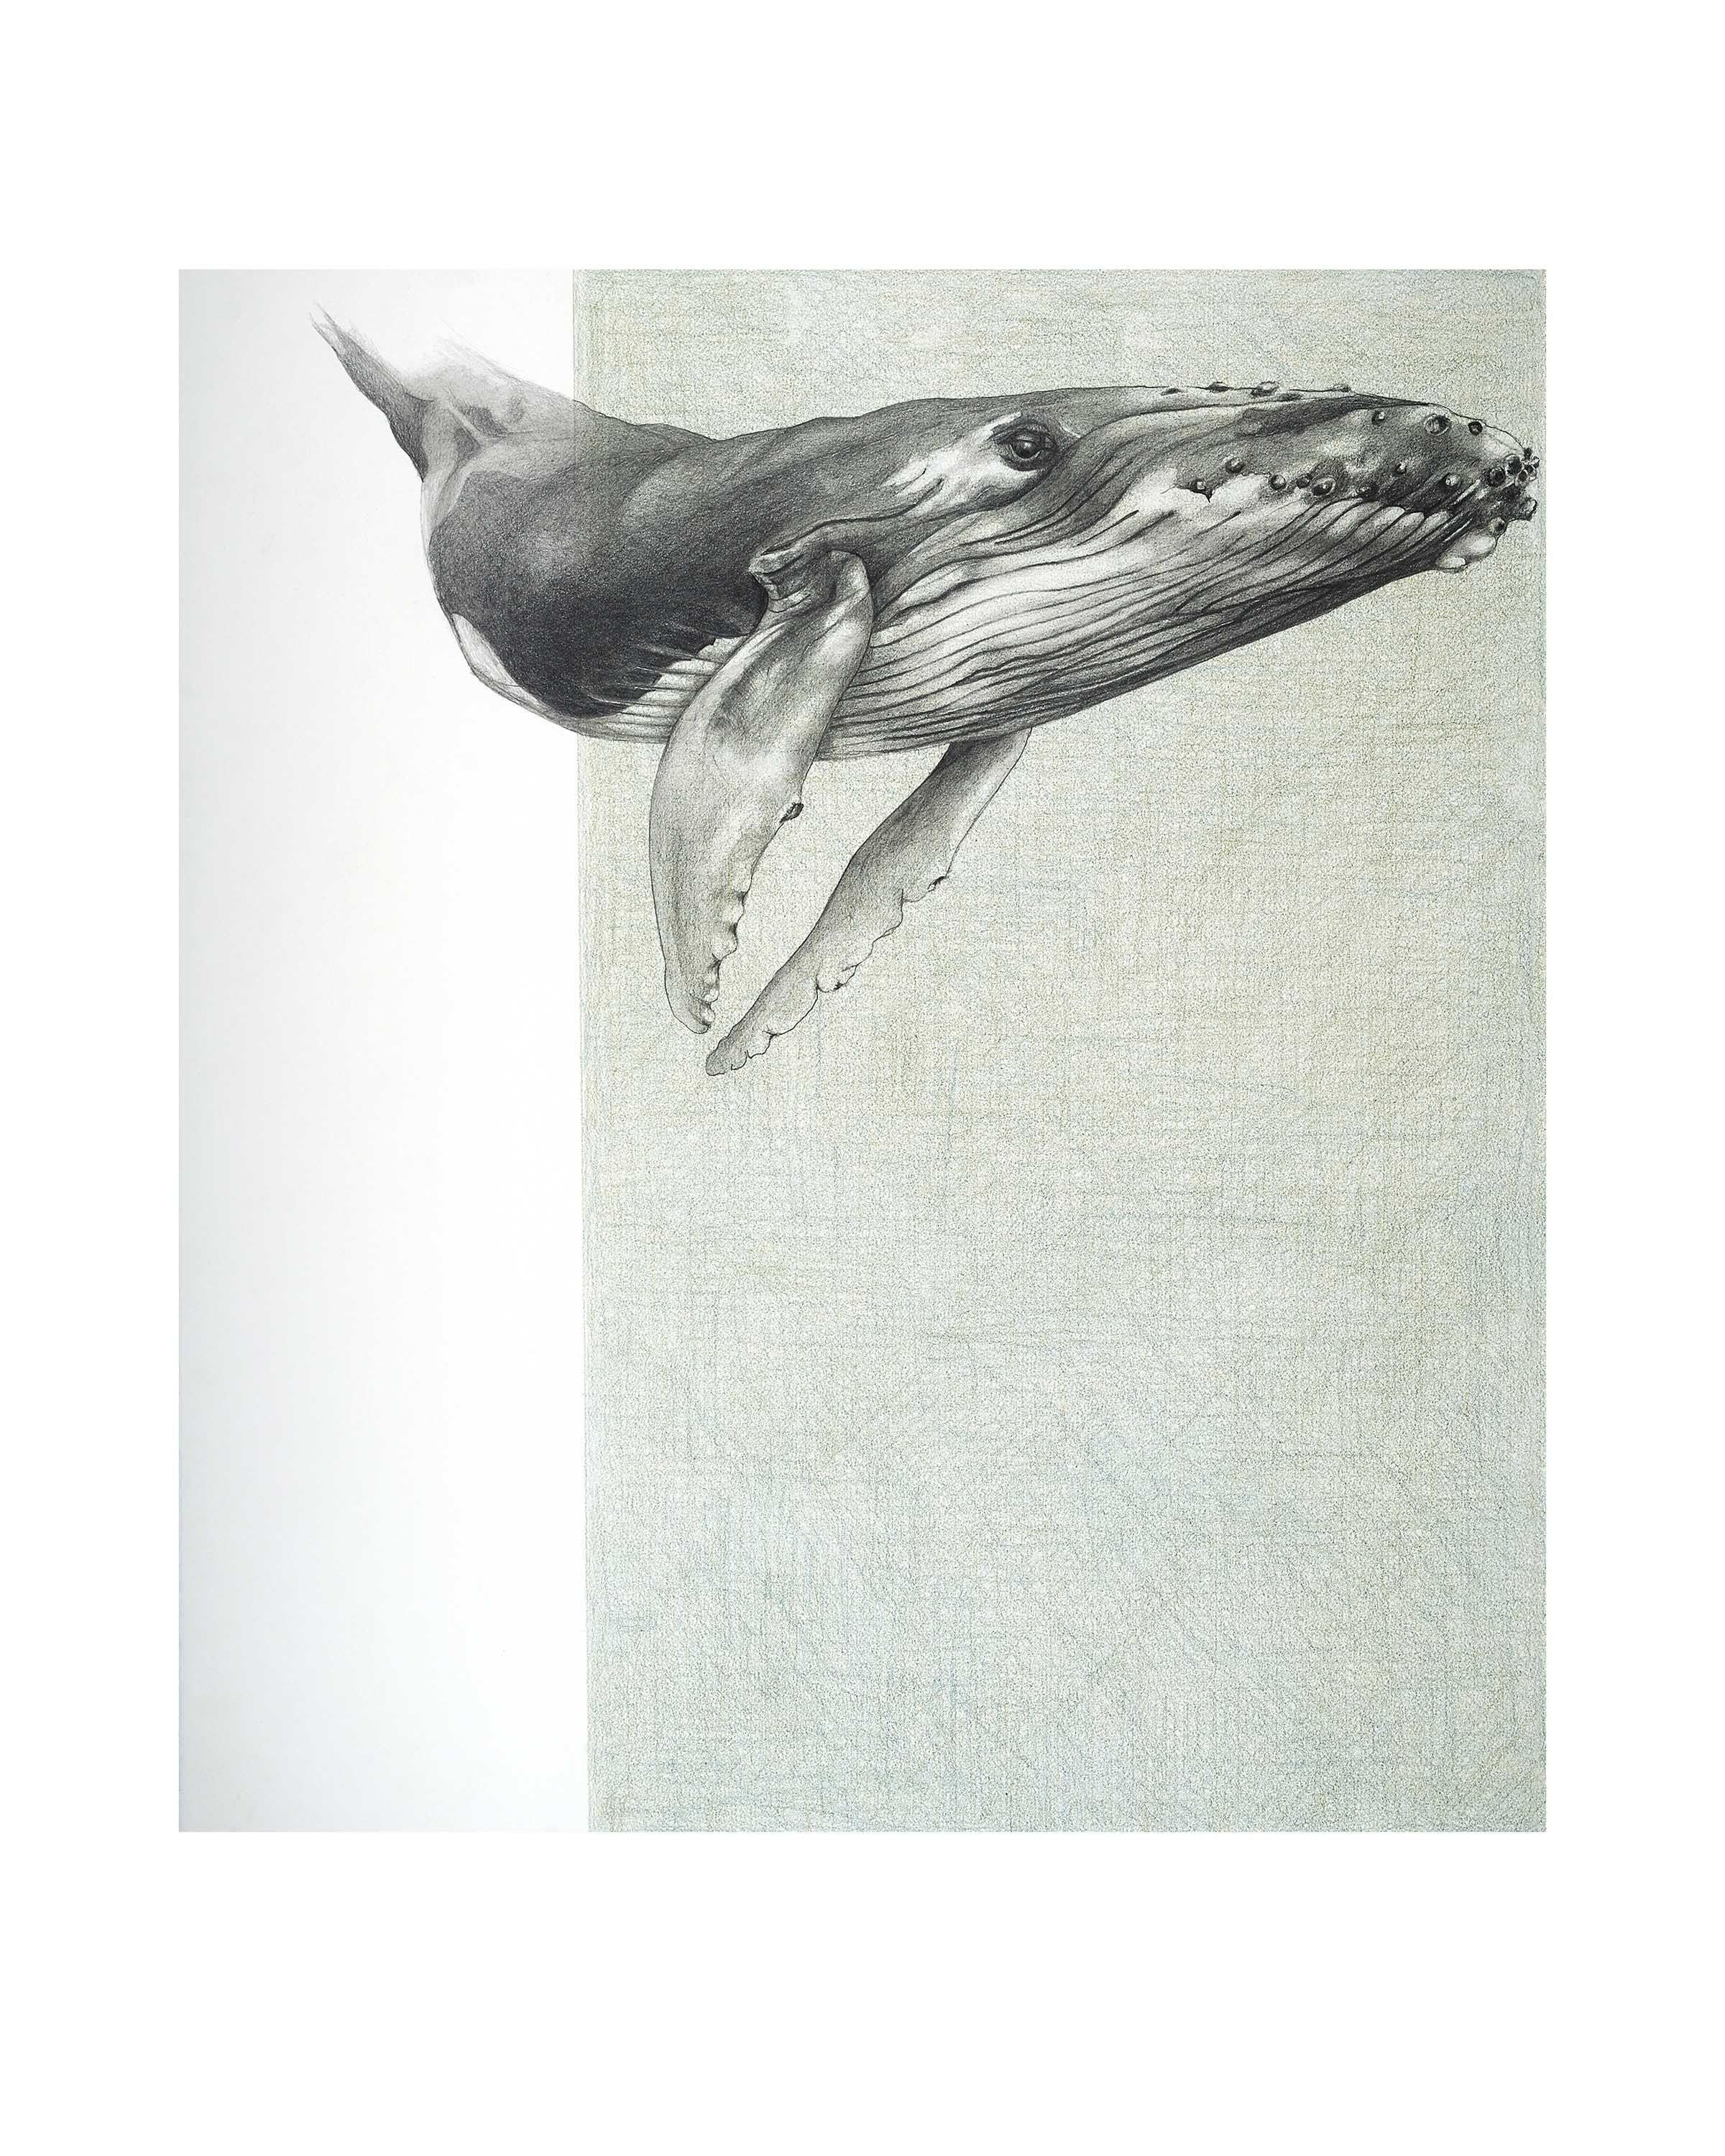 """Humpback Whale 1 £40.00 Fine Art Print of a drawing by Rebecca Clark  From the original: 'Whale 3' (2016) by Rebecca Clark. Graphite and coloured pencil on paper.   Print size - 10x8""""   Finished size - 12x10""""  Printed on Fine Art Hahnemuhle German Etching paper, a 100% TCF (Totally Chlorine Free), age resistant, traditional fine art paper with a smooth finish and fine textured surface.   The print is suppled mounted and sealed in a presentation bag."""